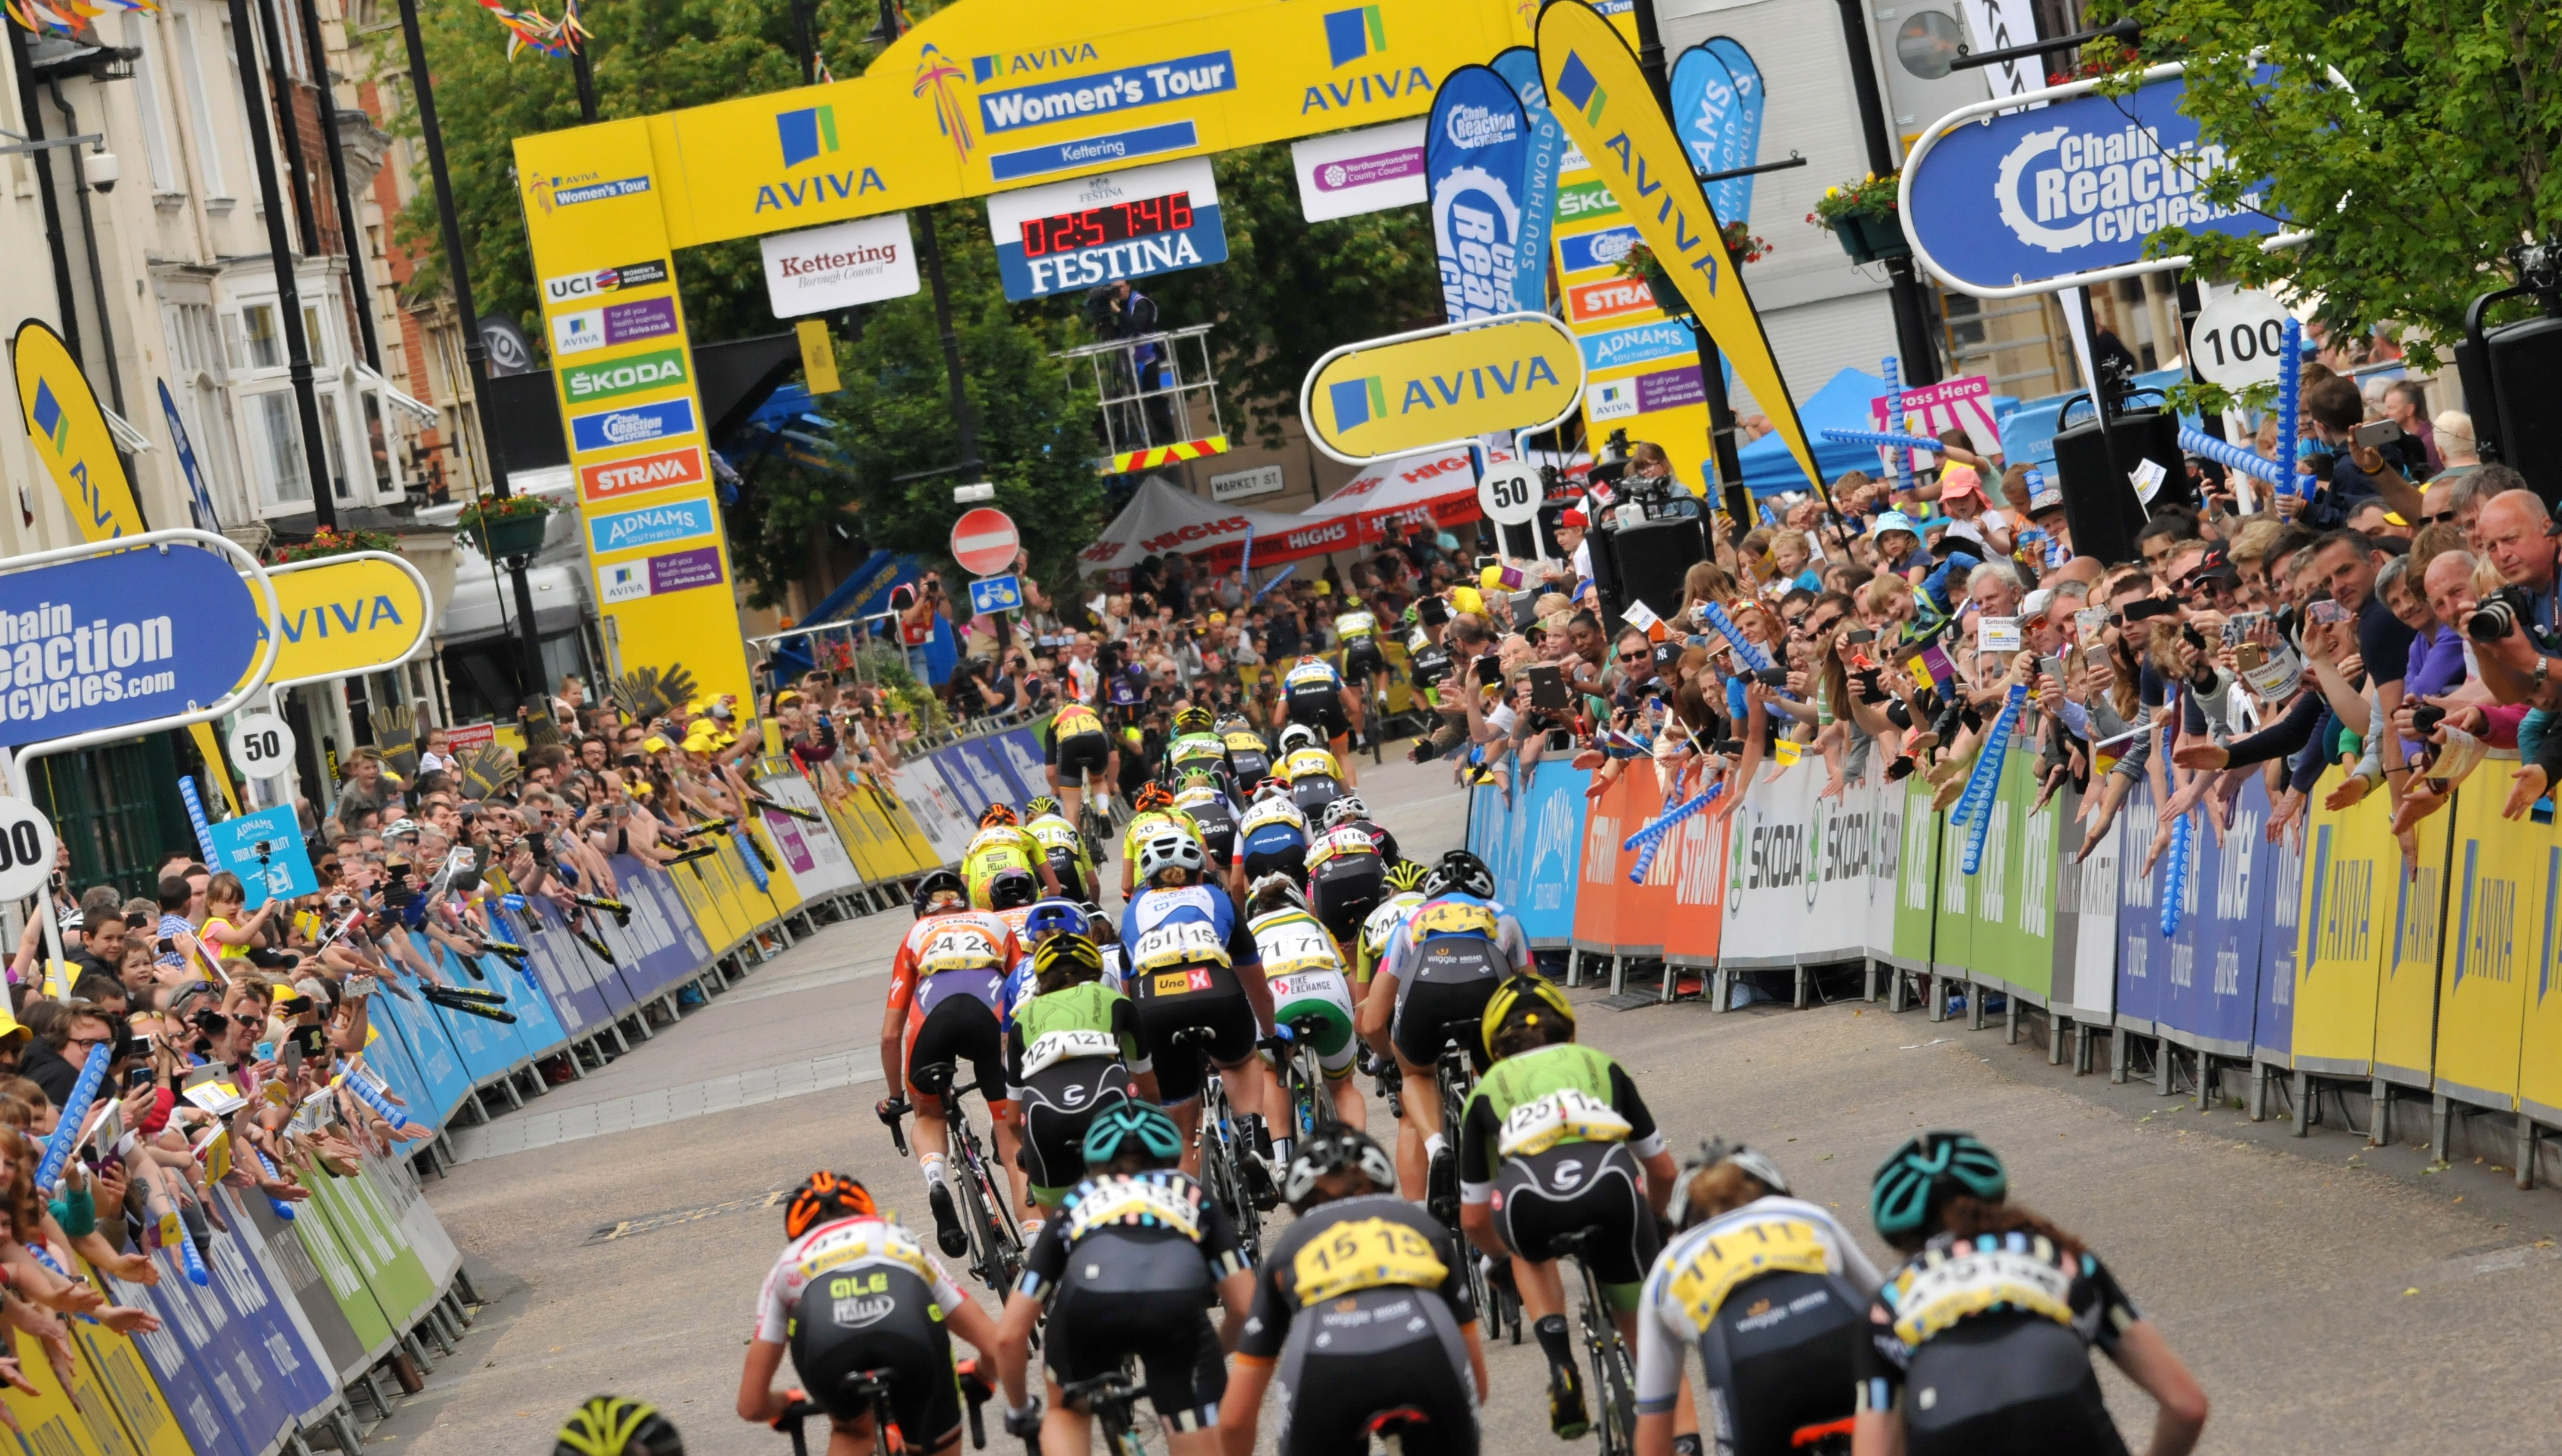 Relive the 2016 Women's Tour